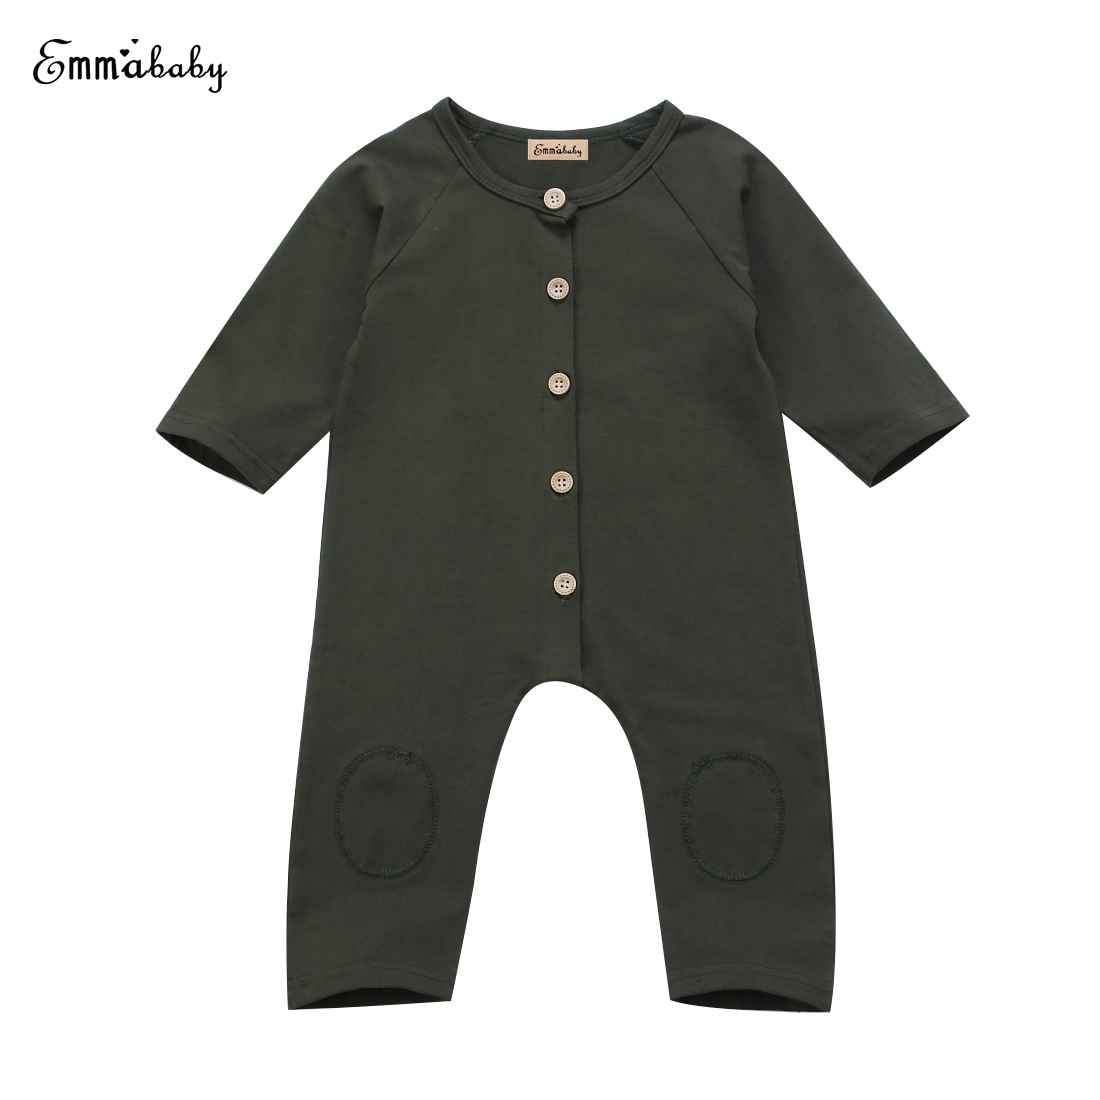 2017 Newest Fashion Newborn Kids Baby Boys Romper Long Sleeve Brief Solid Jumpsuit Outfits Set Clothes 0-2Y puseky 2017 infant romper baby boys girls jumpsuit newborn bebe clothing hooded toddler baby clothes cute panda romper costumes